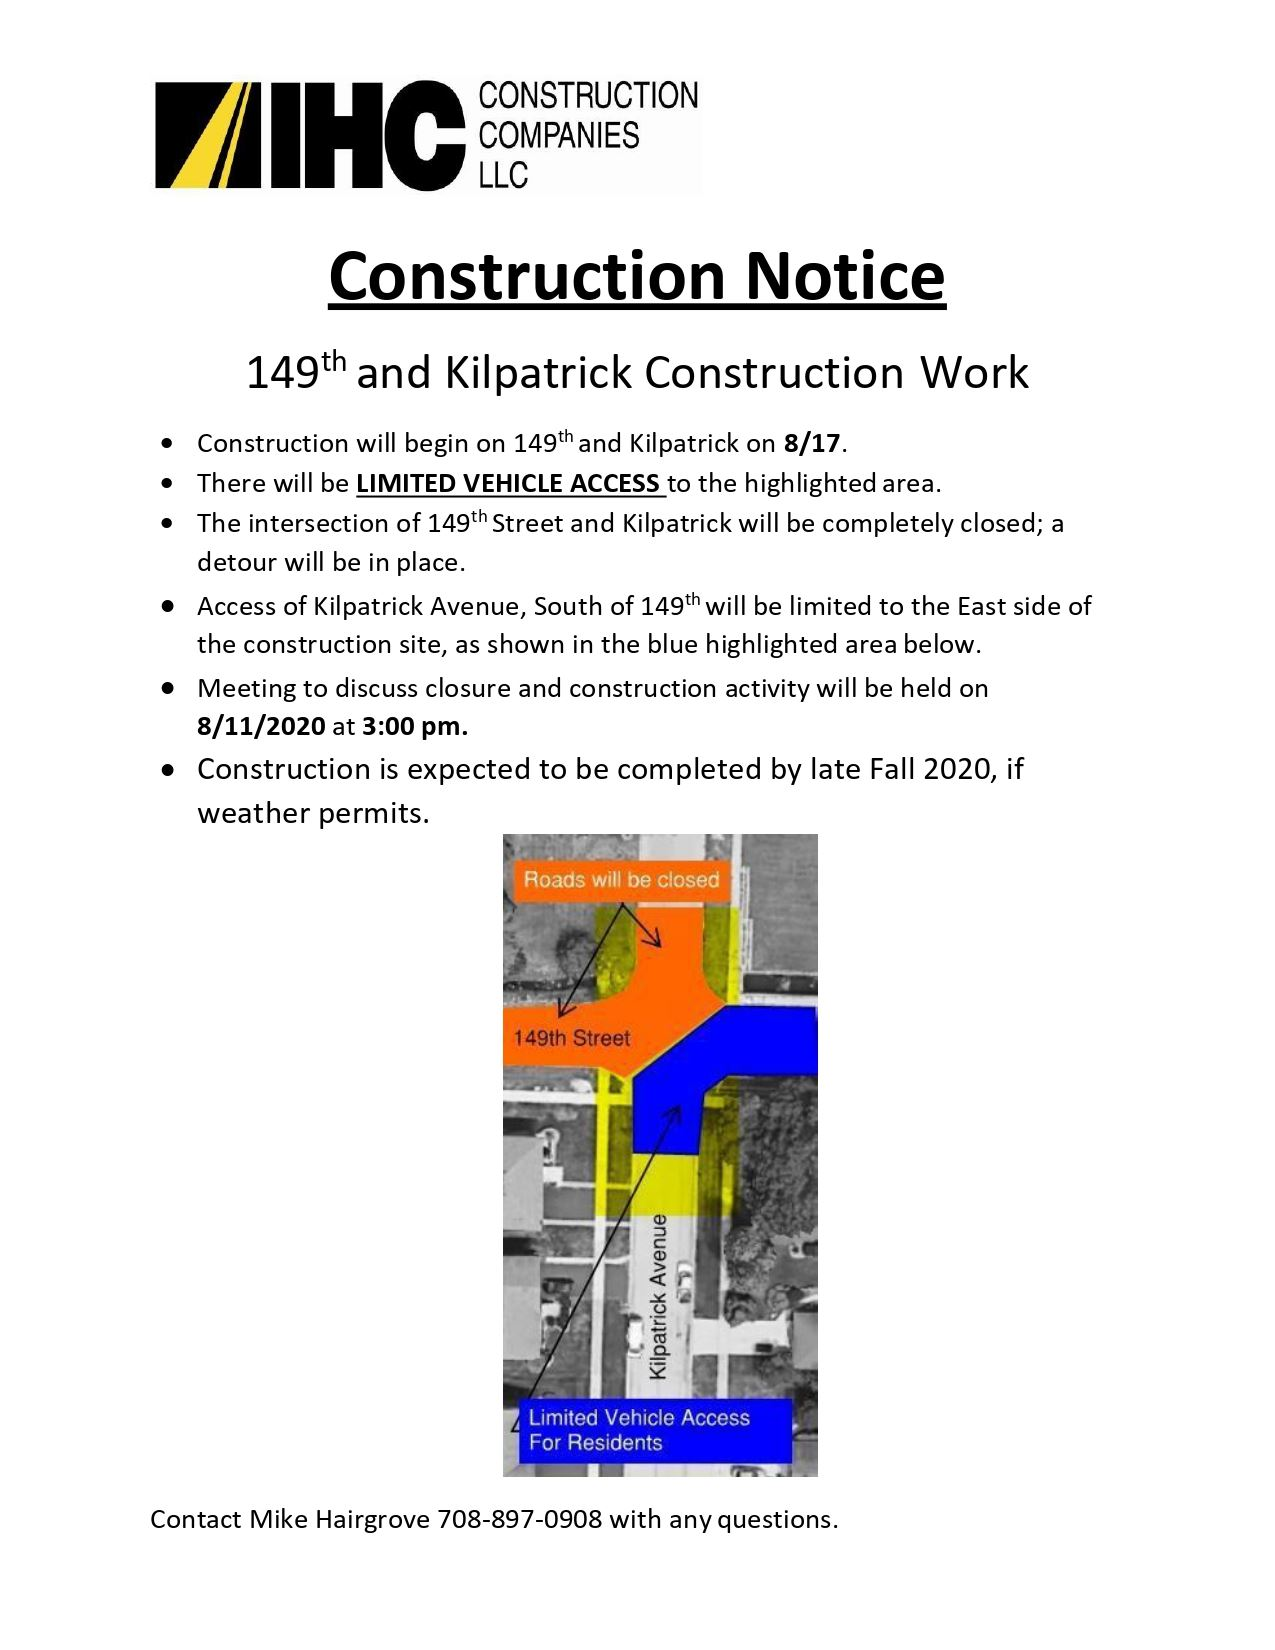 149th and Kilpatrick Construction Notice - 1